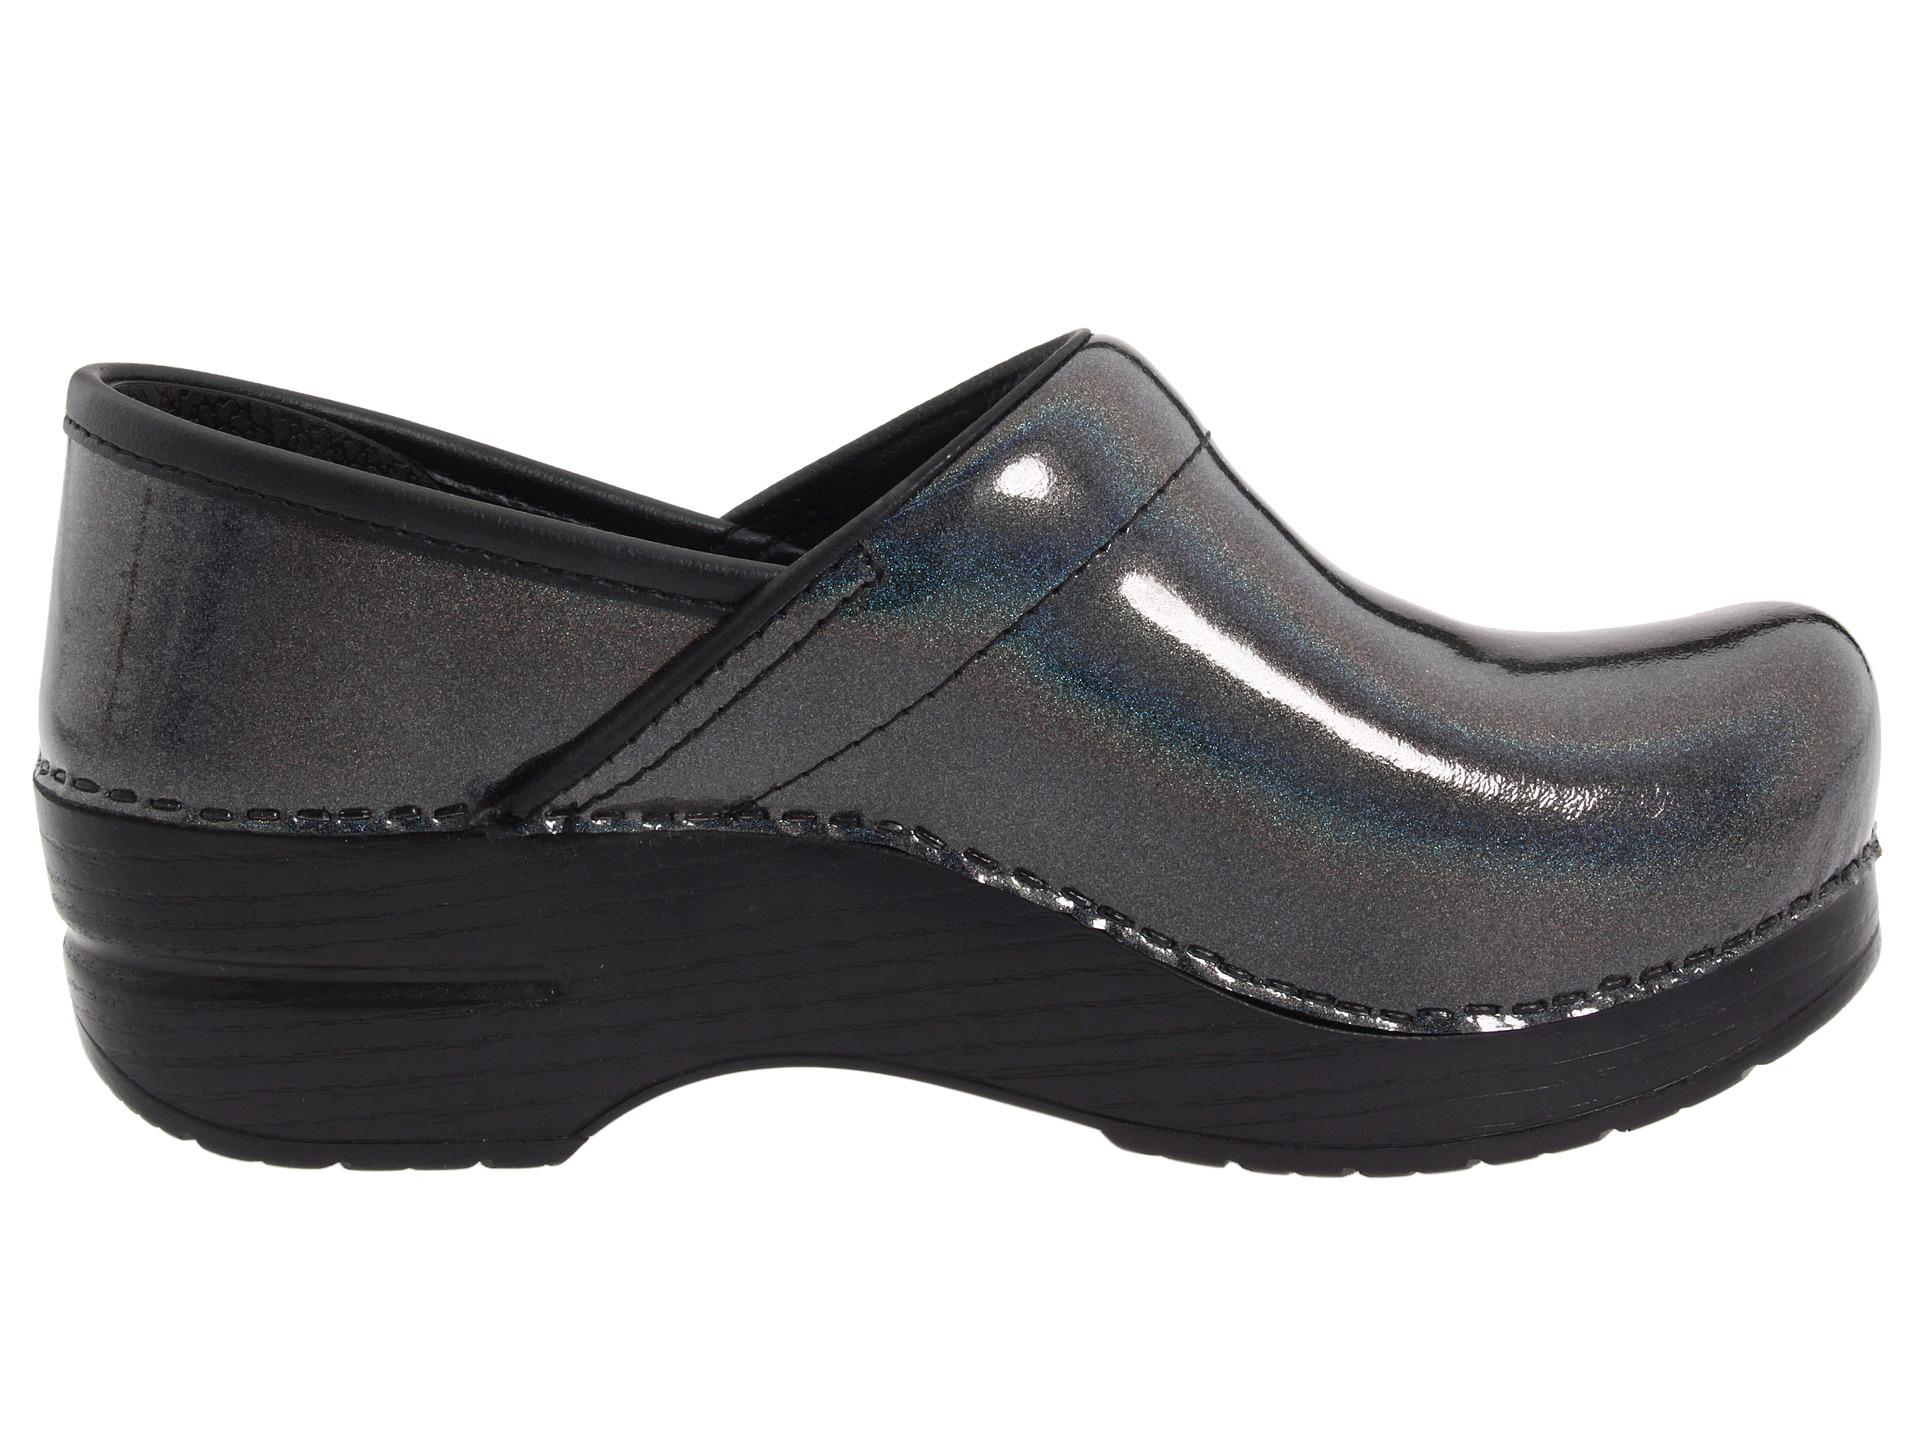 Dansko Professional Clogs Clearance 2017 2018 Best